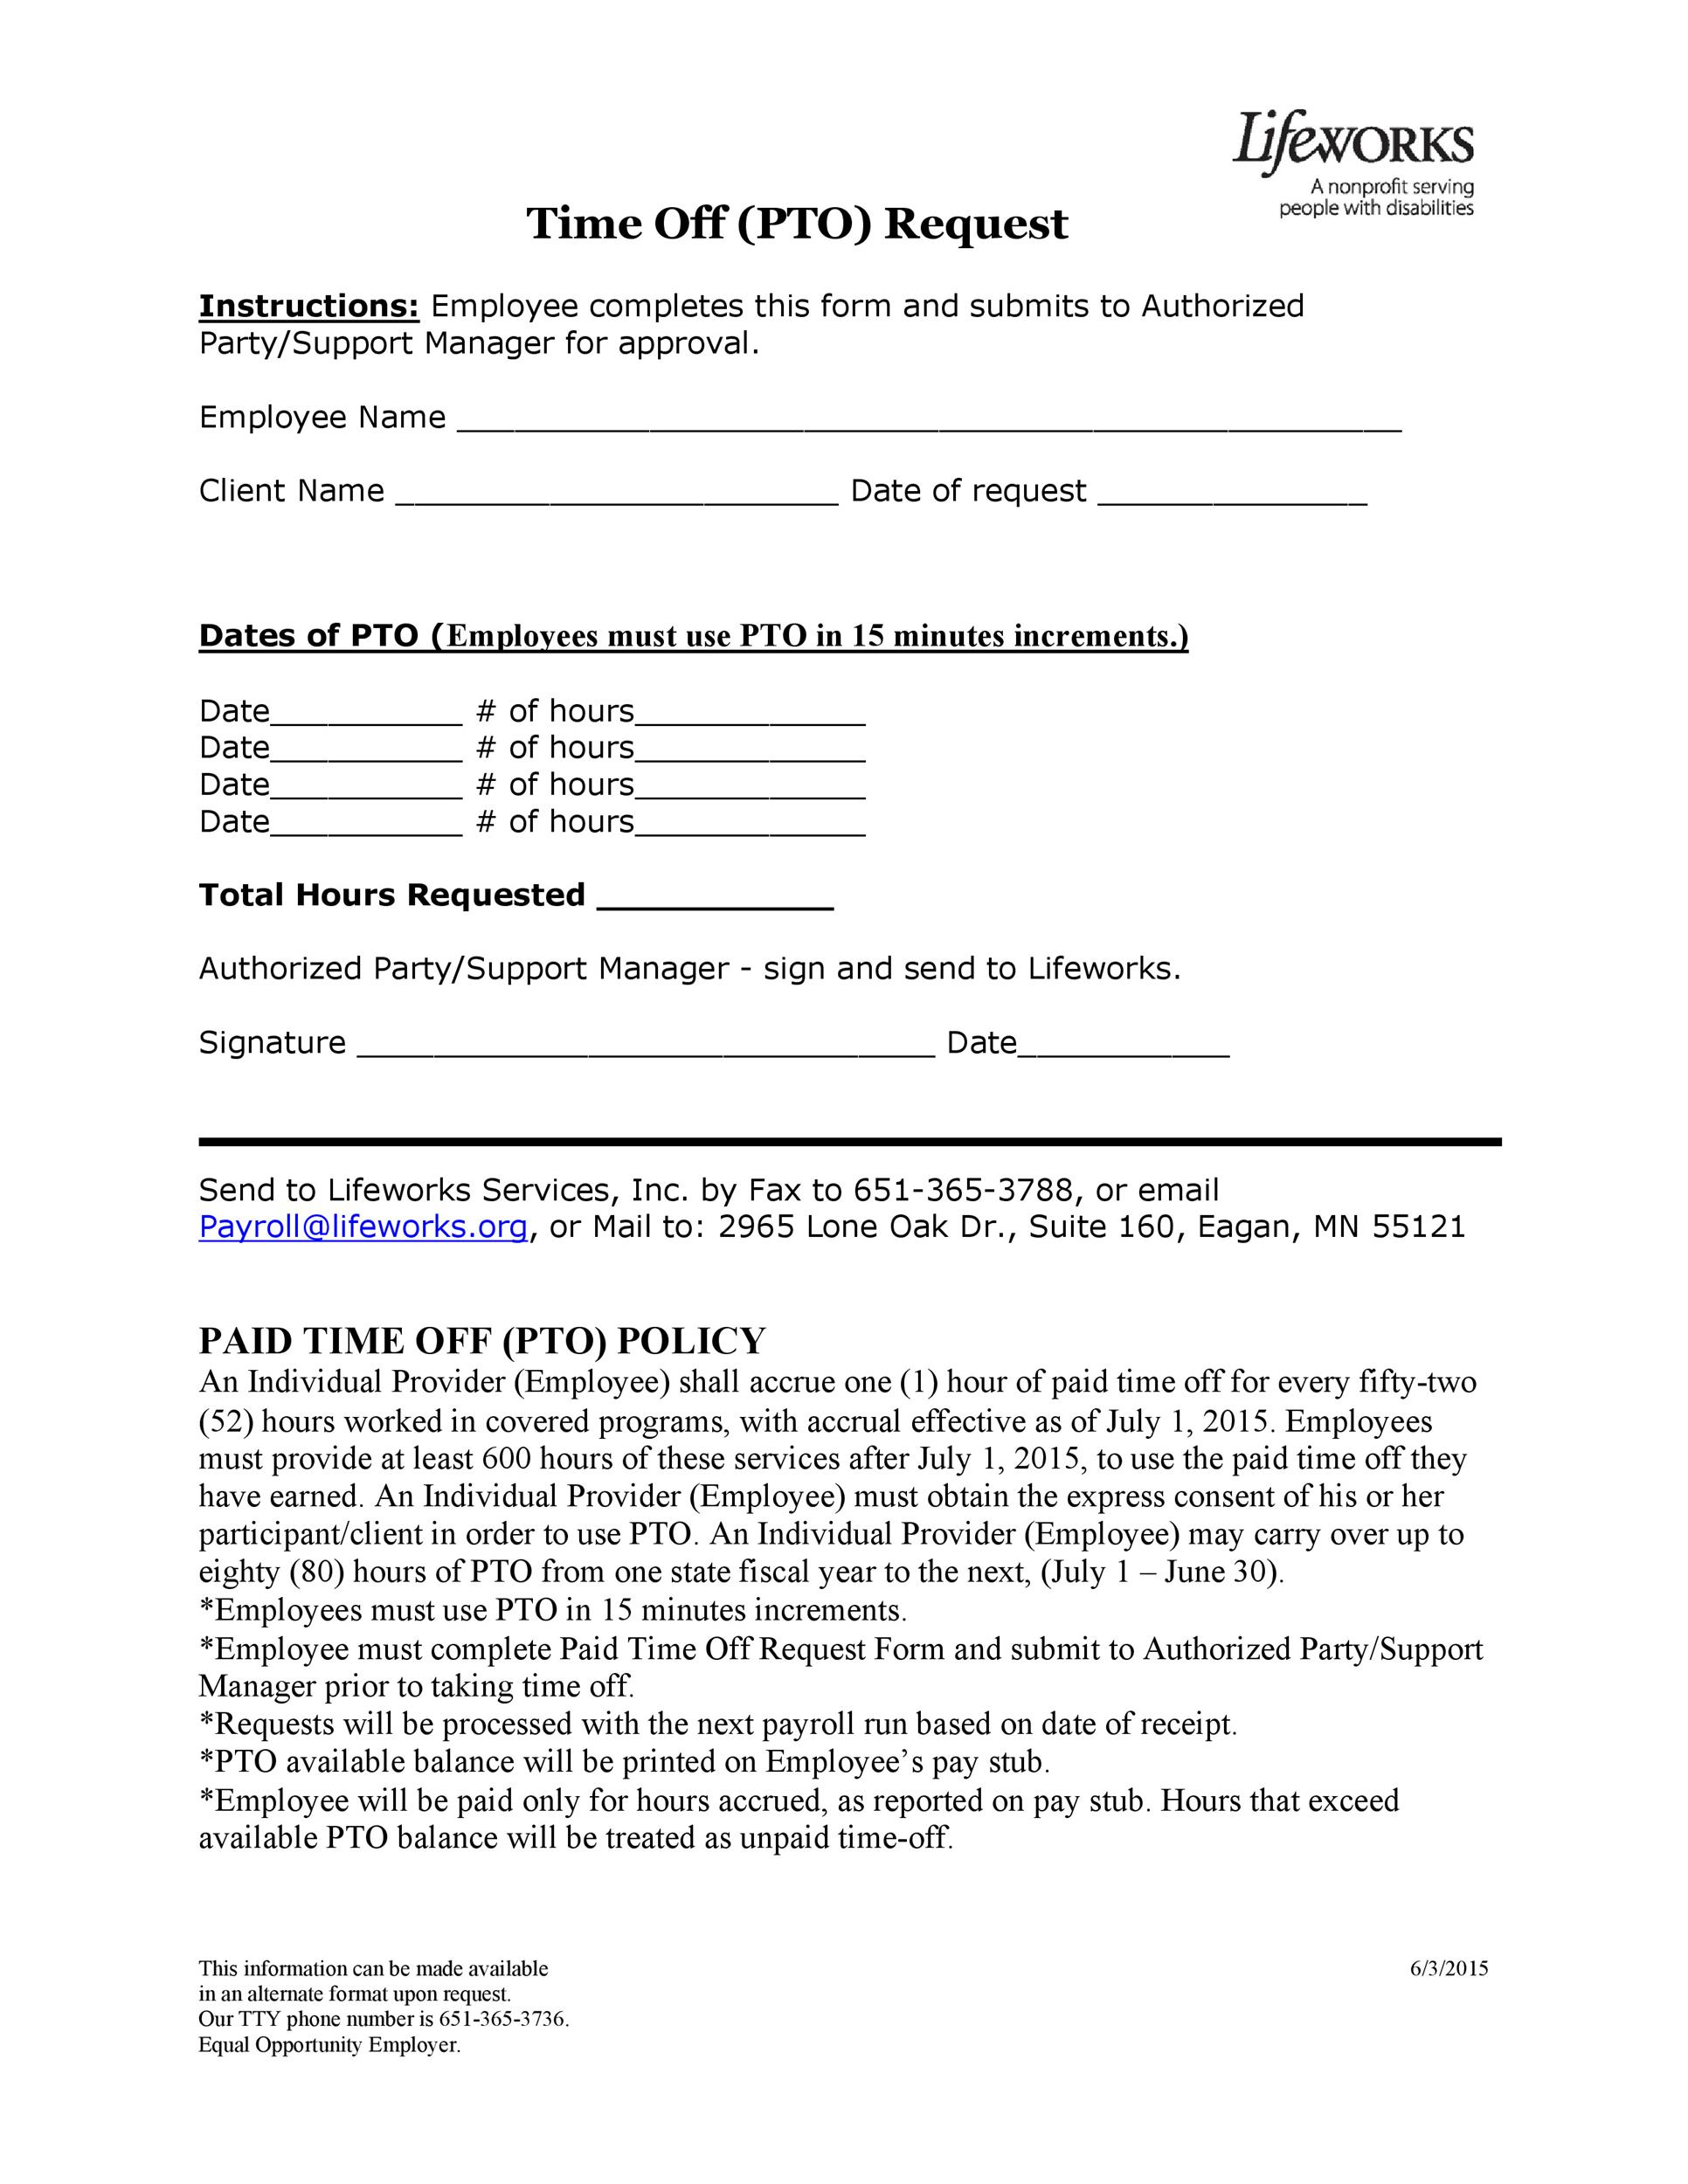 Time Off Request Forms | 40 Effective Time Off Request Forms Templates Template Lab